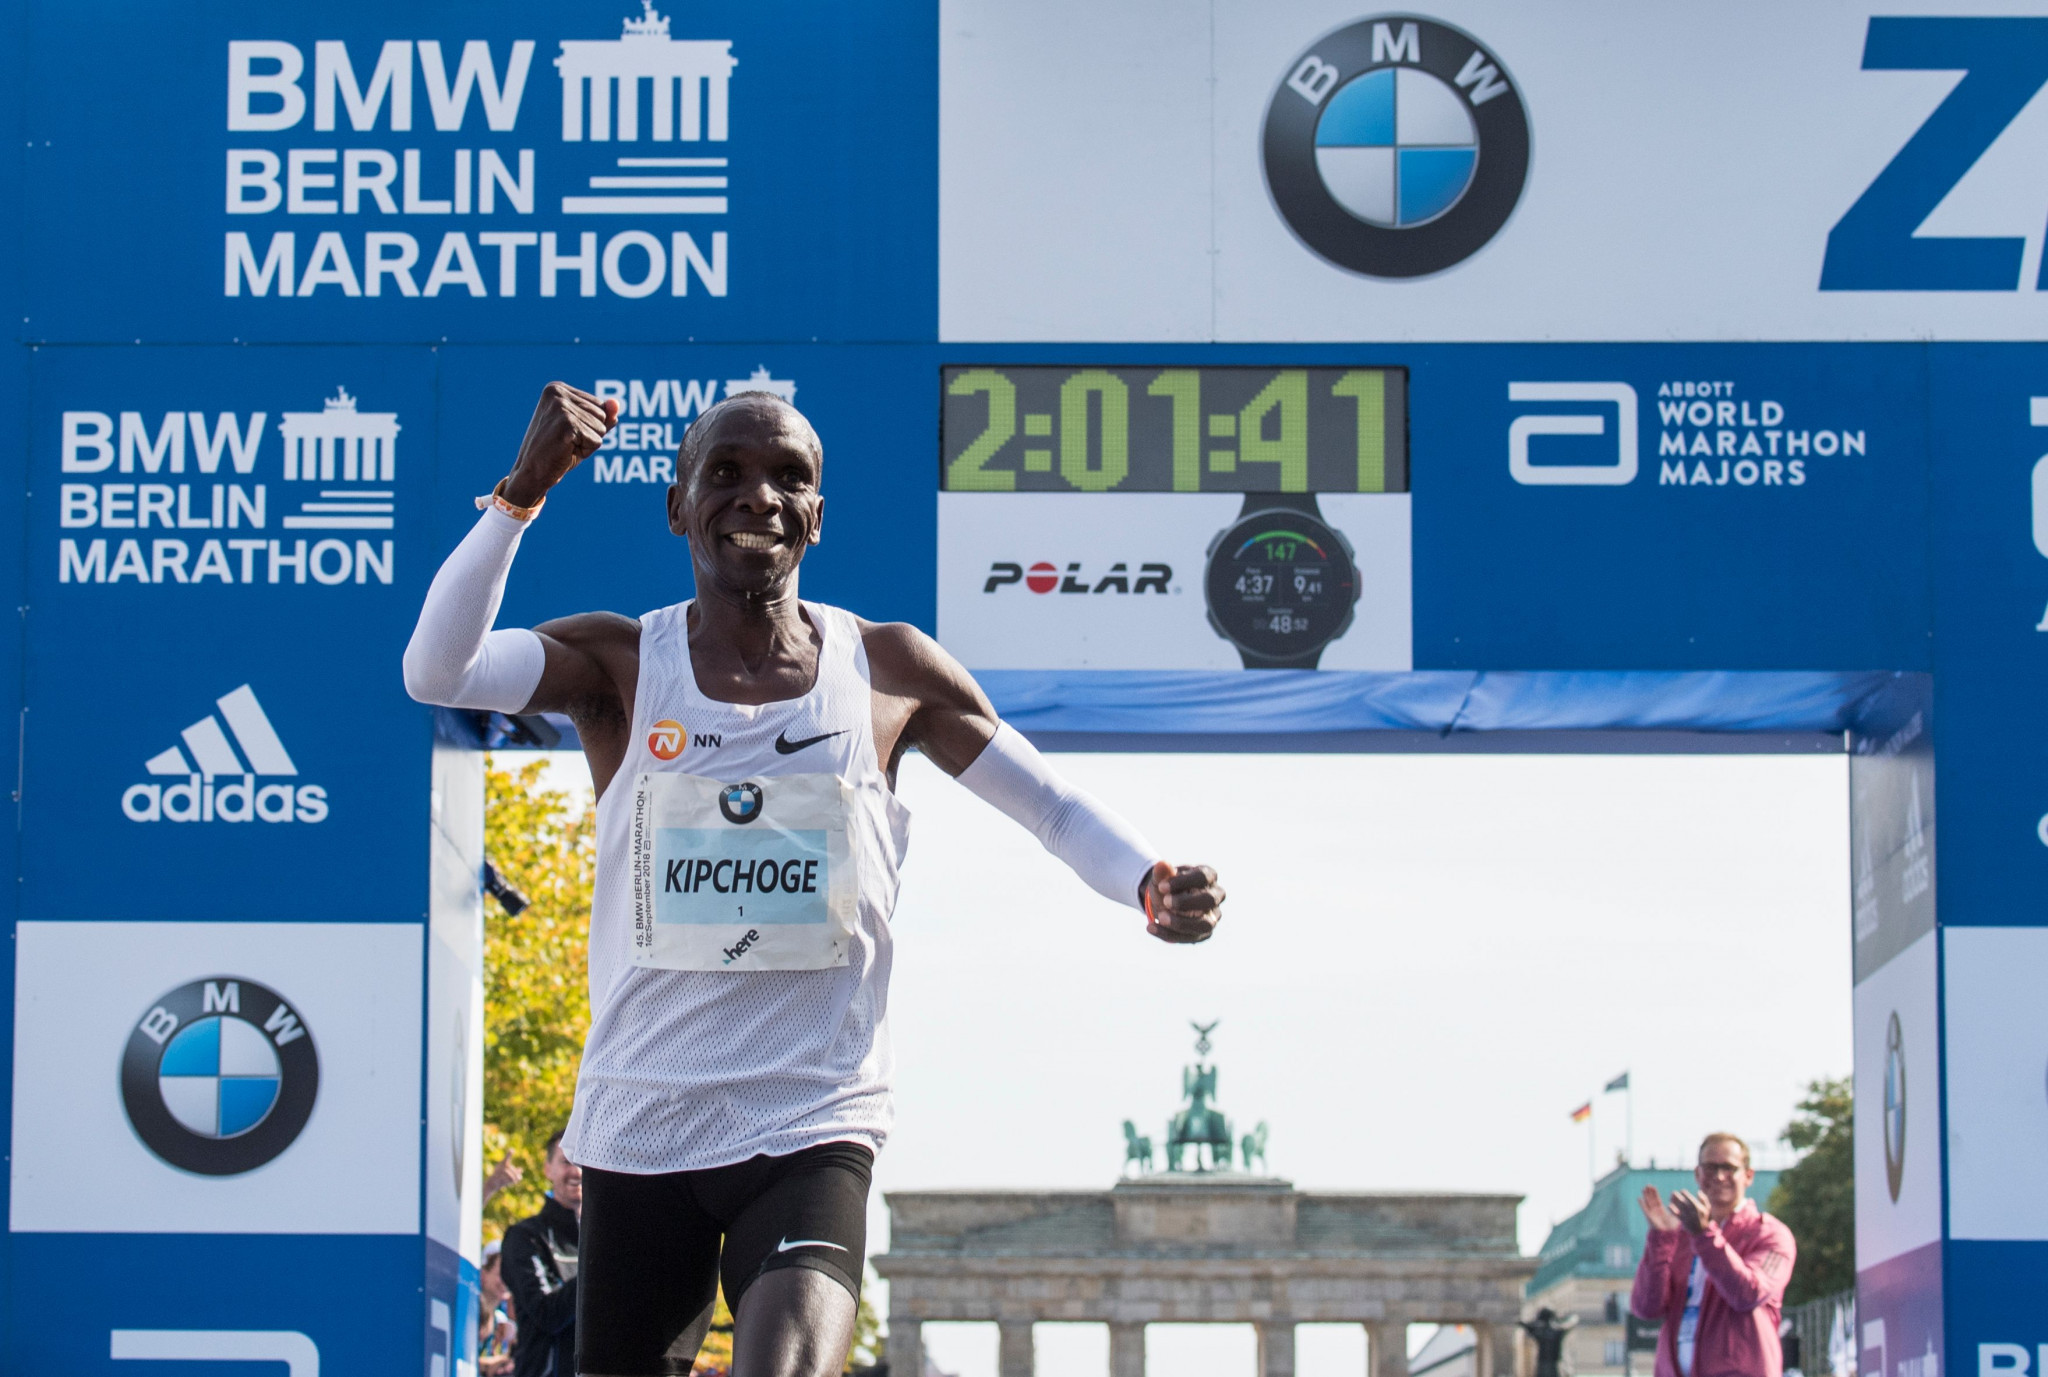 World record holders Kipchoge and Mayer head shortlist for IAAF Male Athlete of the Year